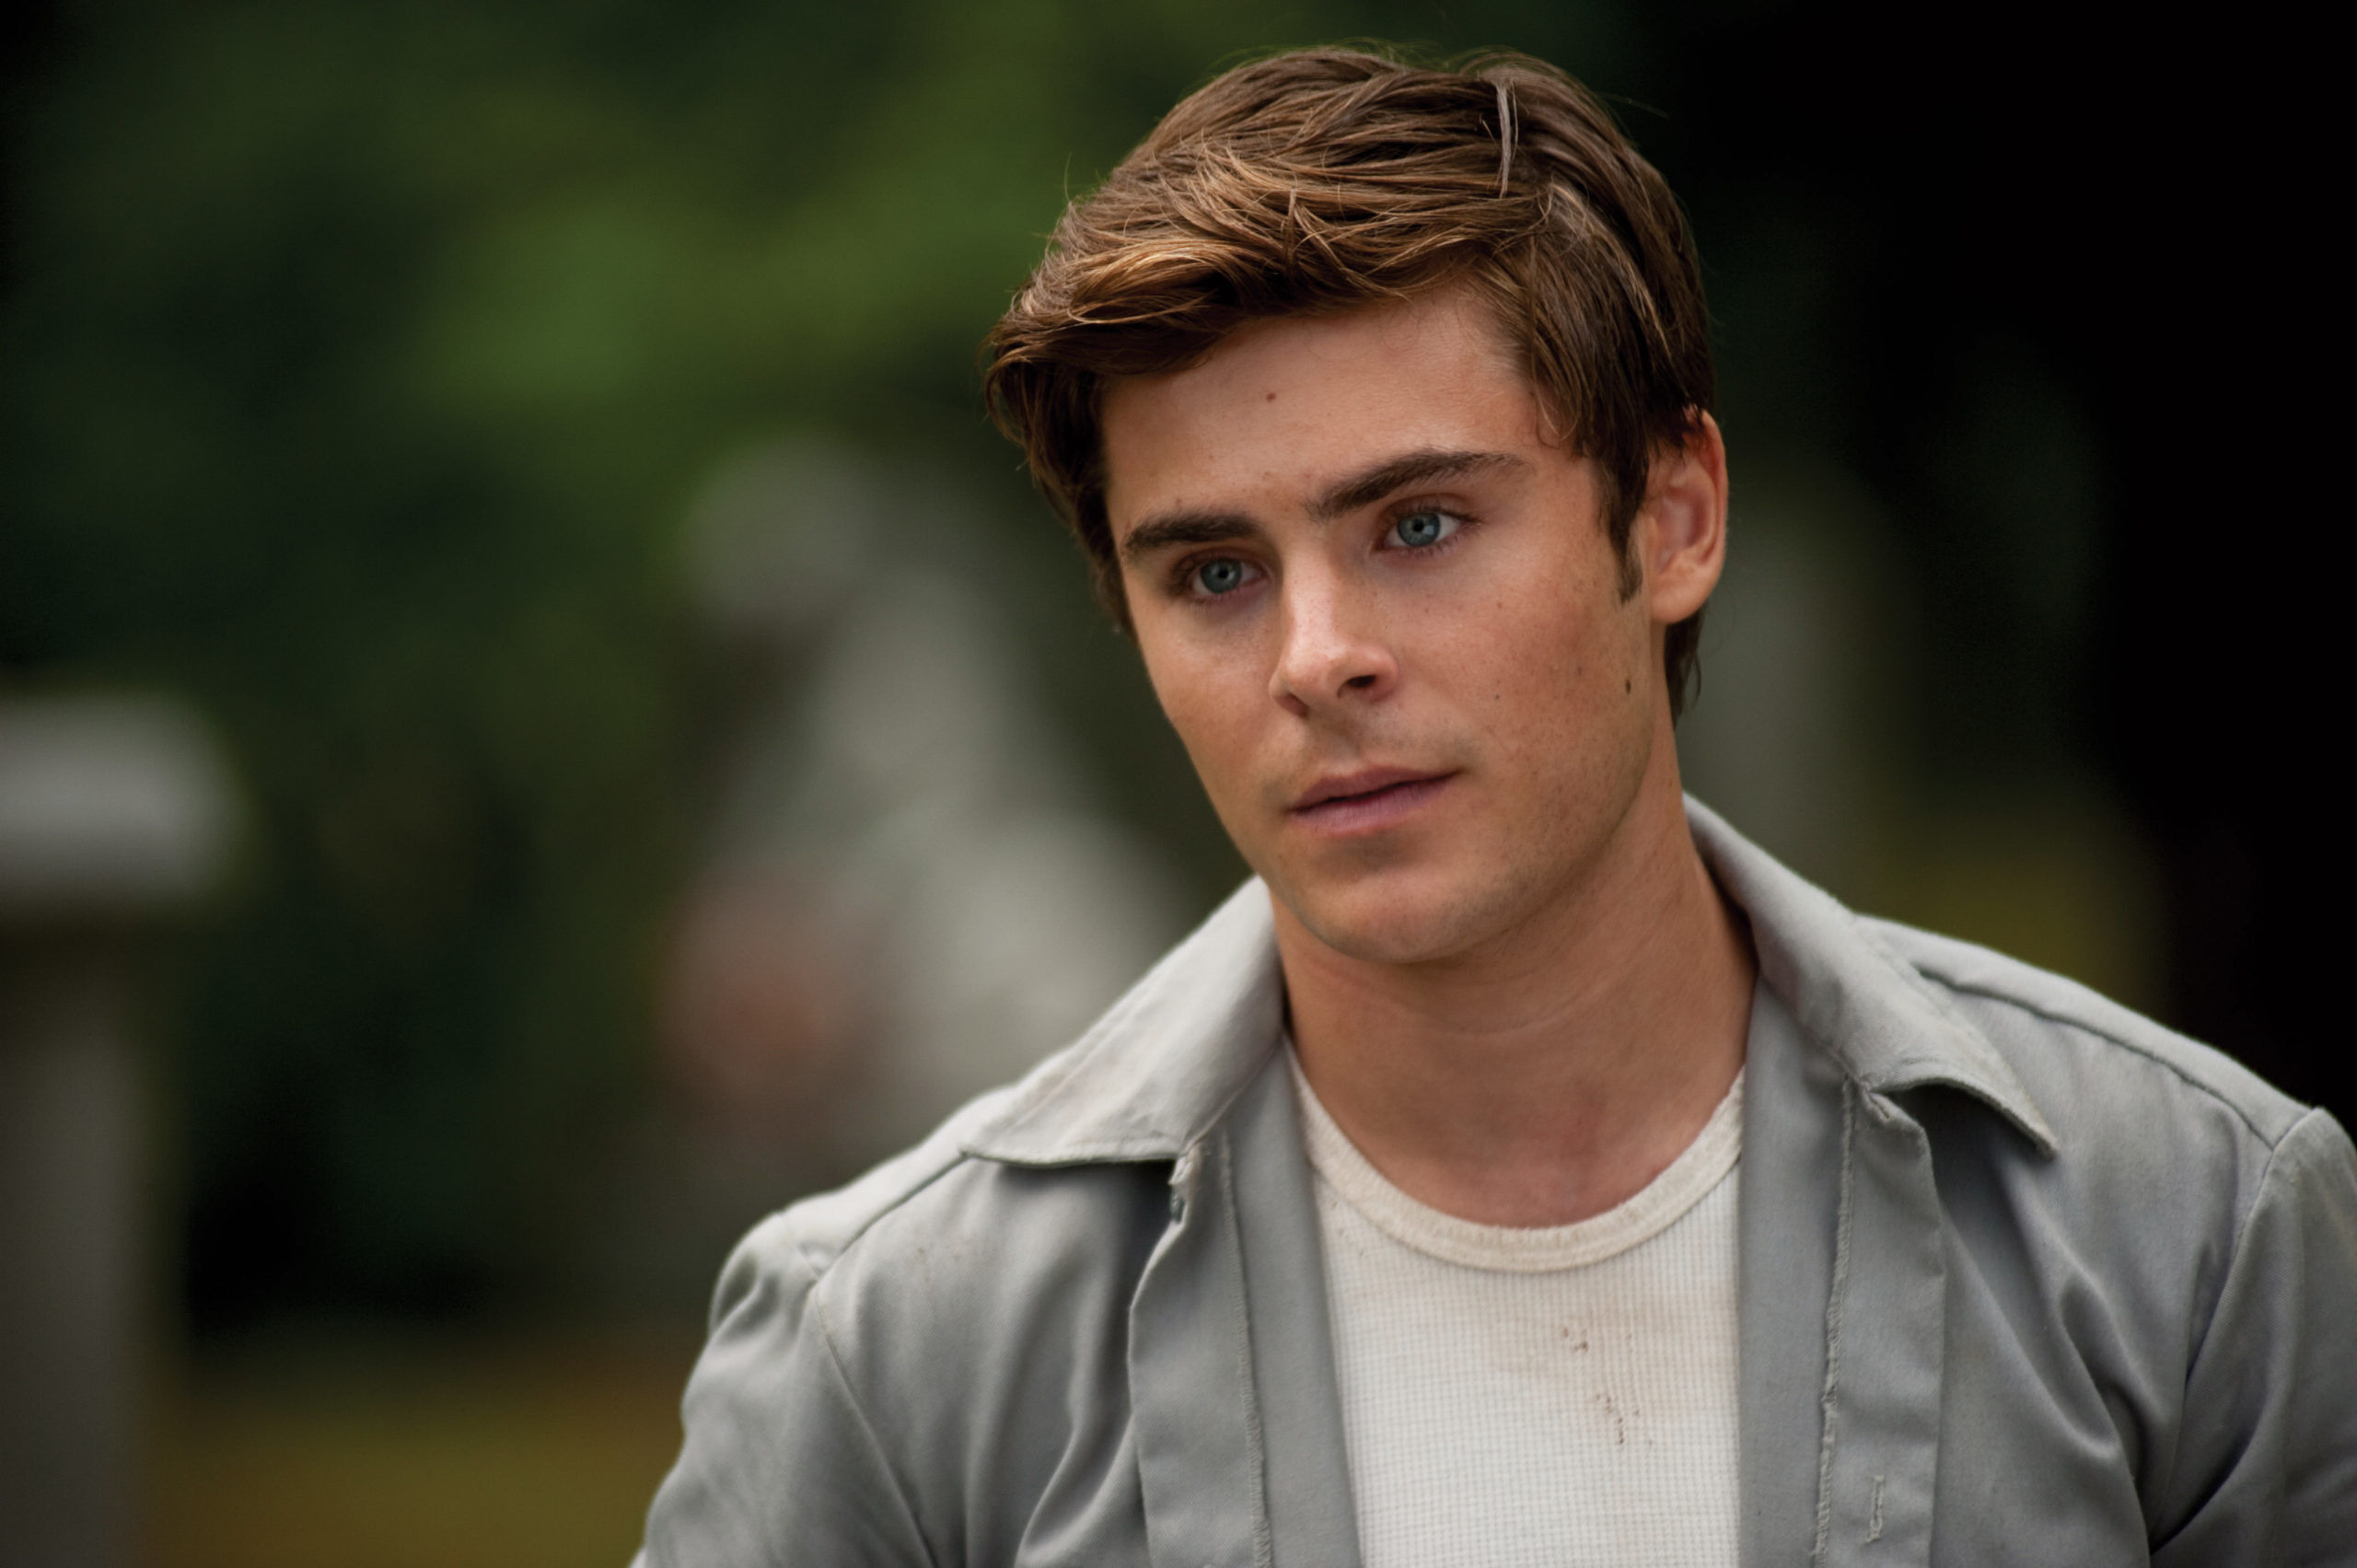 charlie-st-cloud zac efron the human torch fantastic four mcu